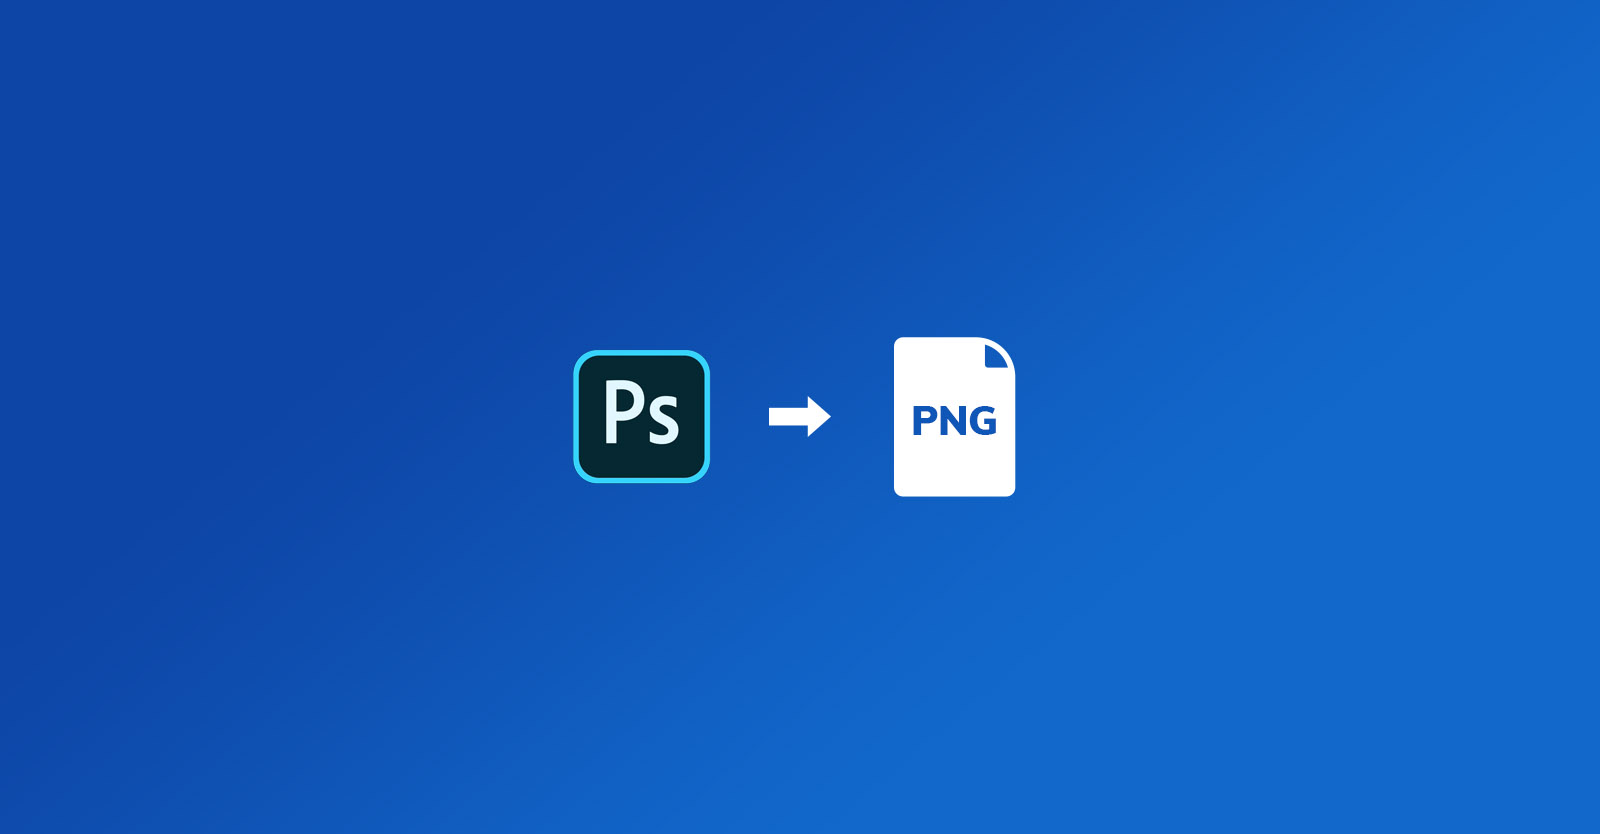 How to export a PNG file from Photoshop